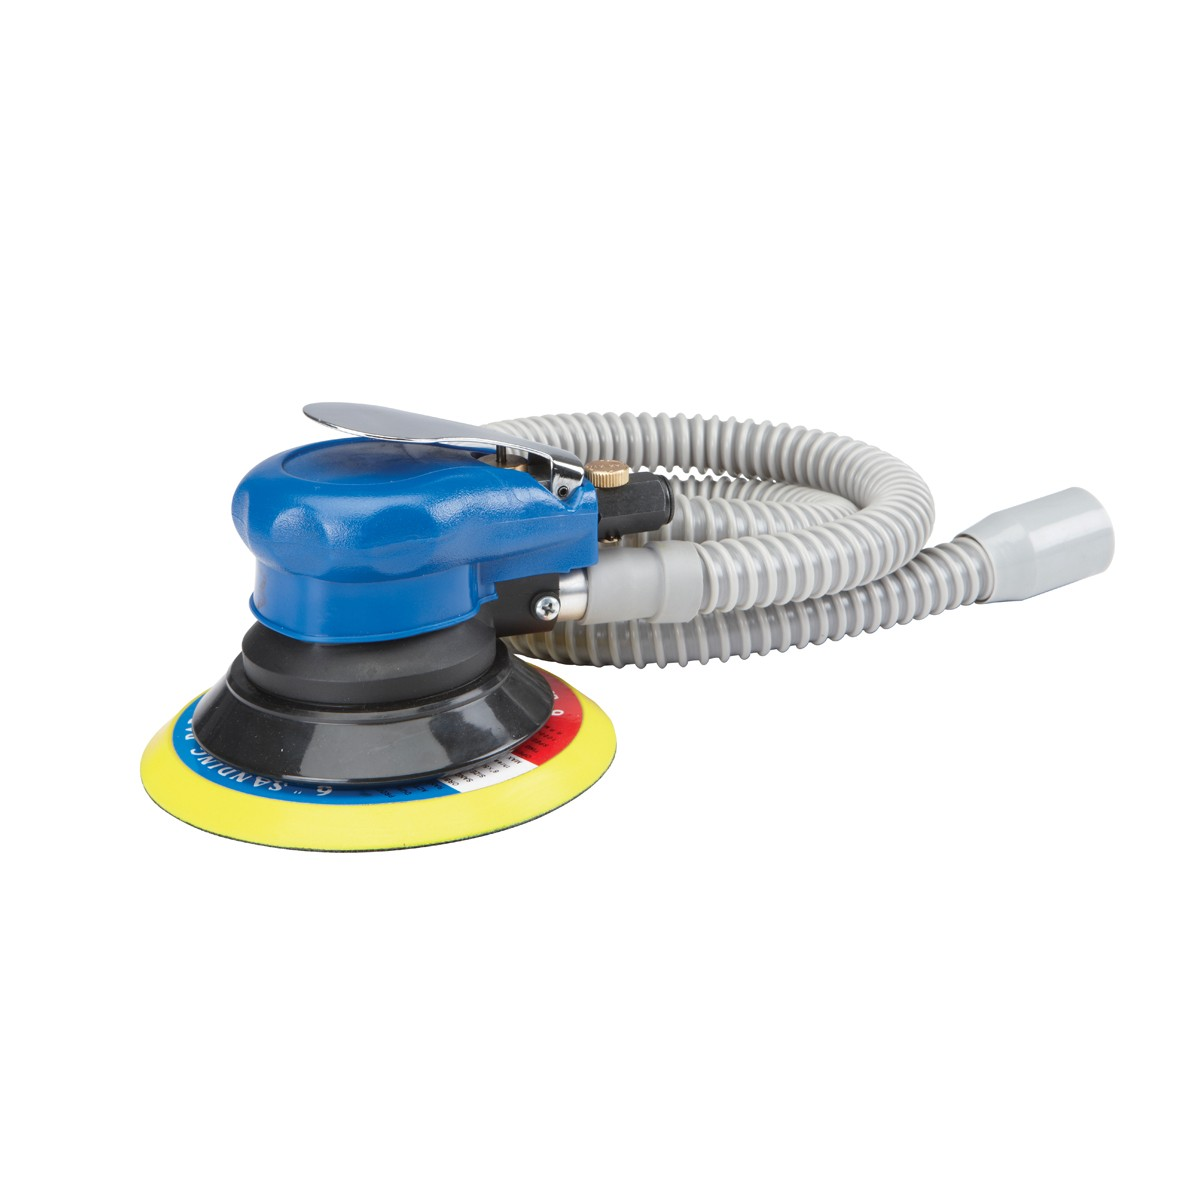 6 in. Self-Vacuuming Palm Air Sander